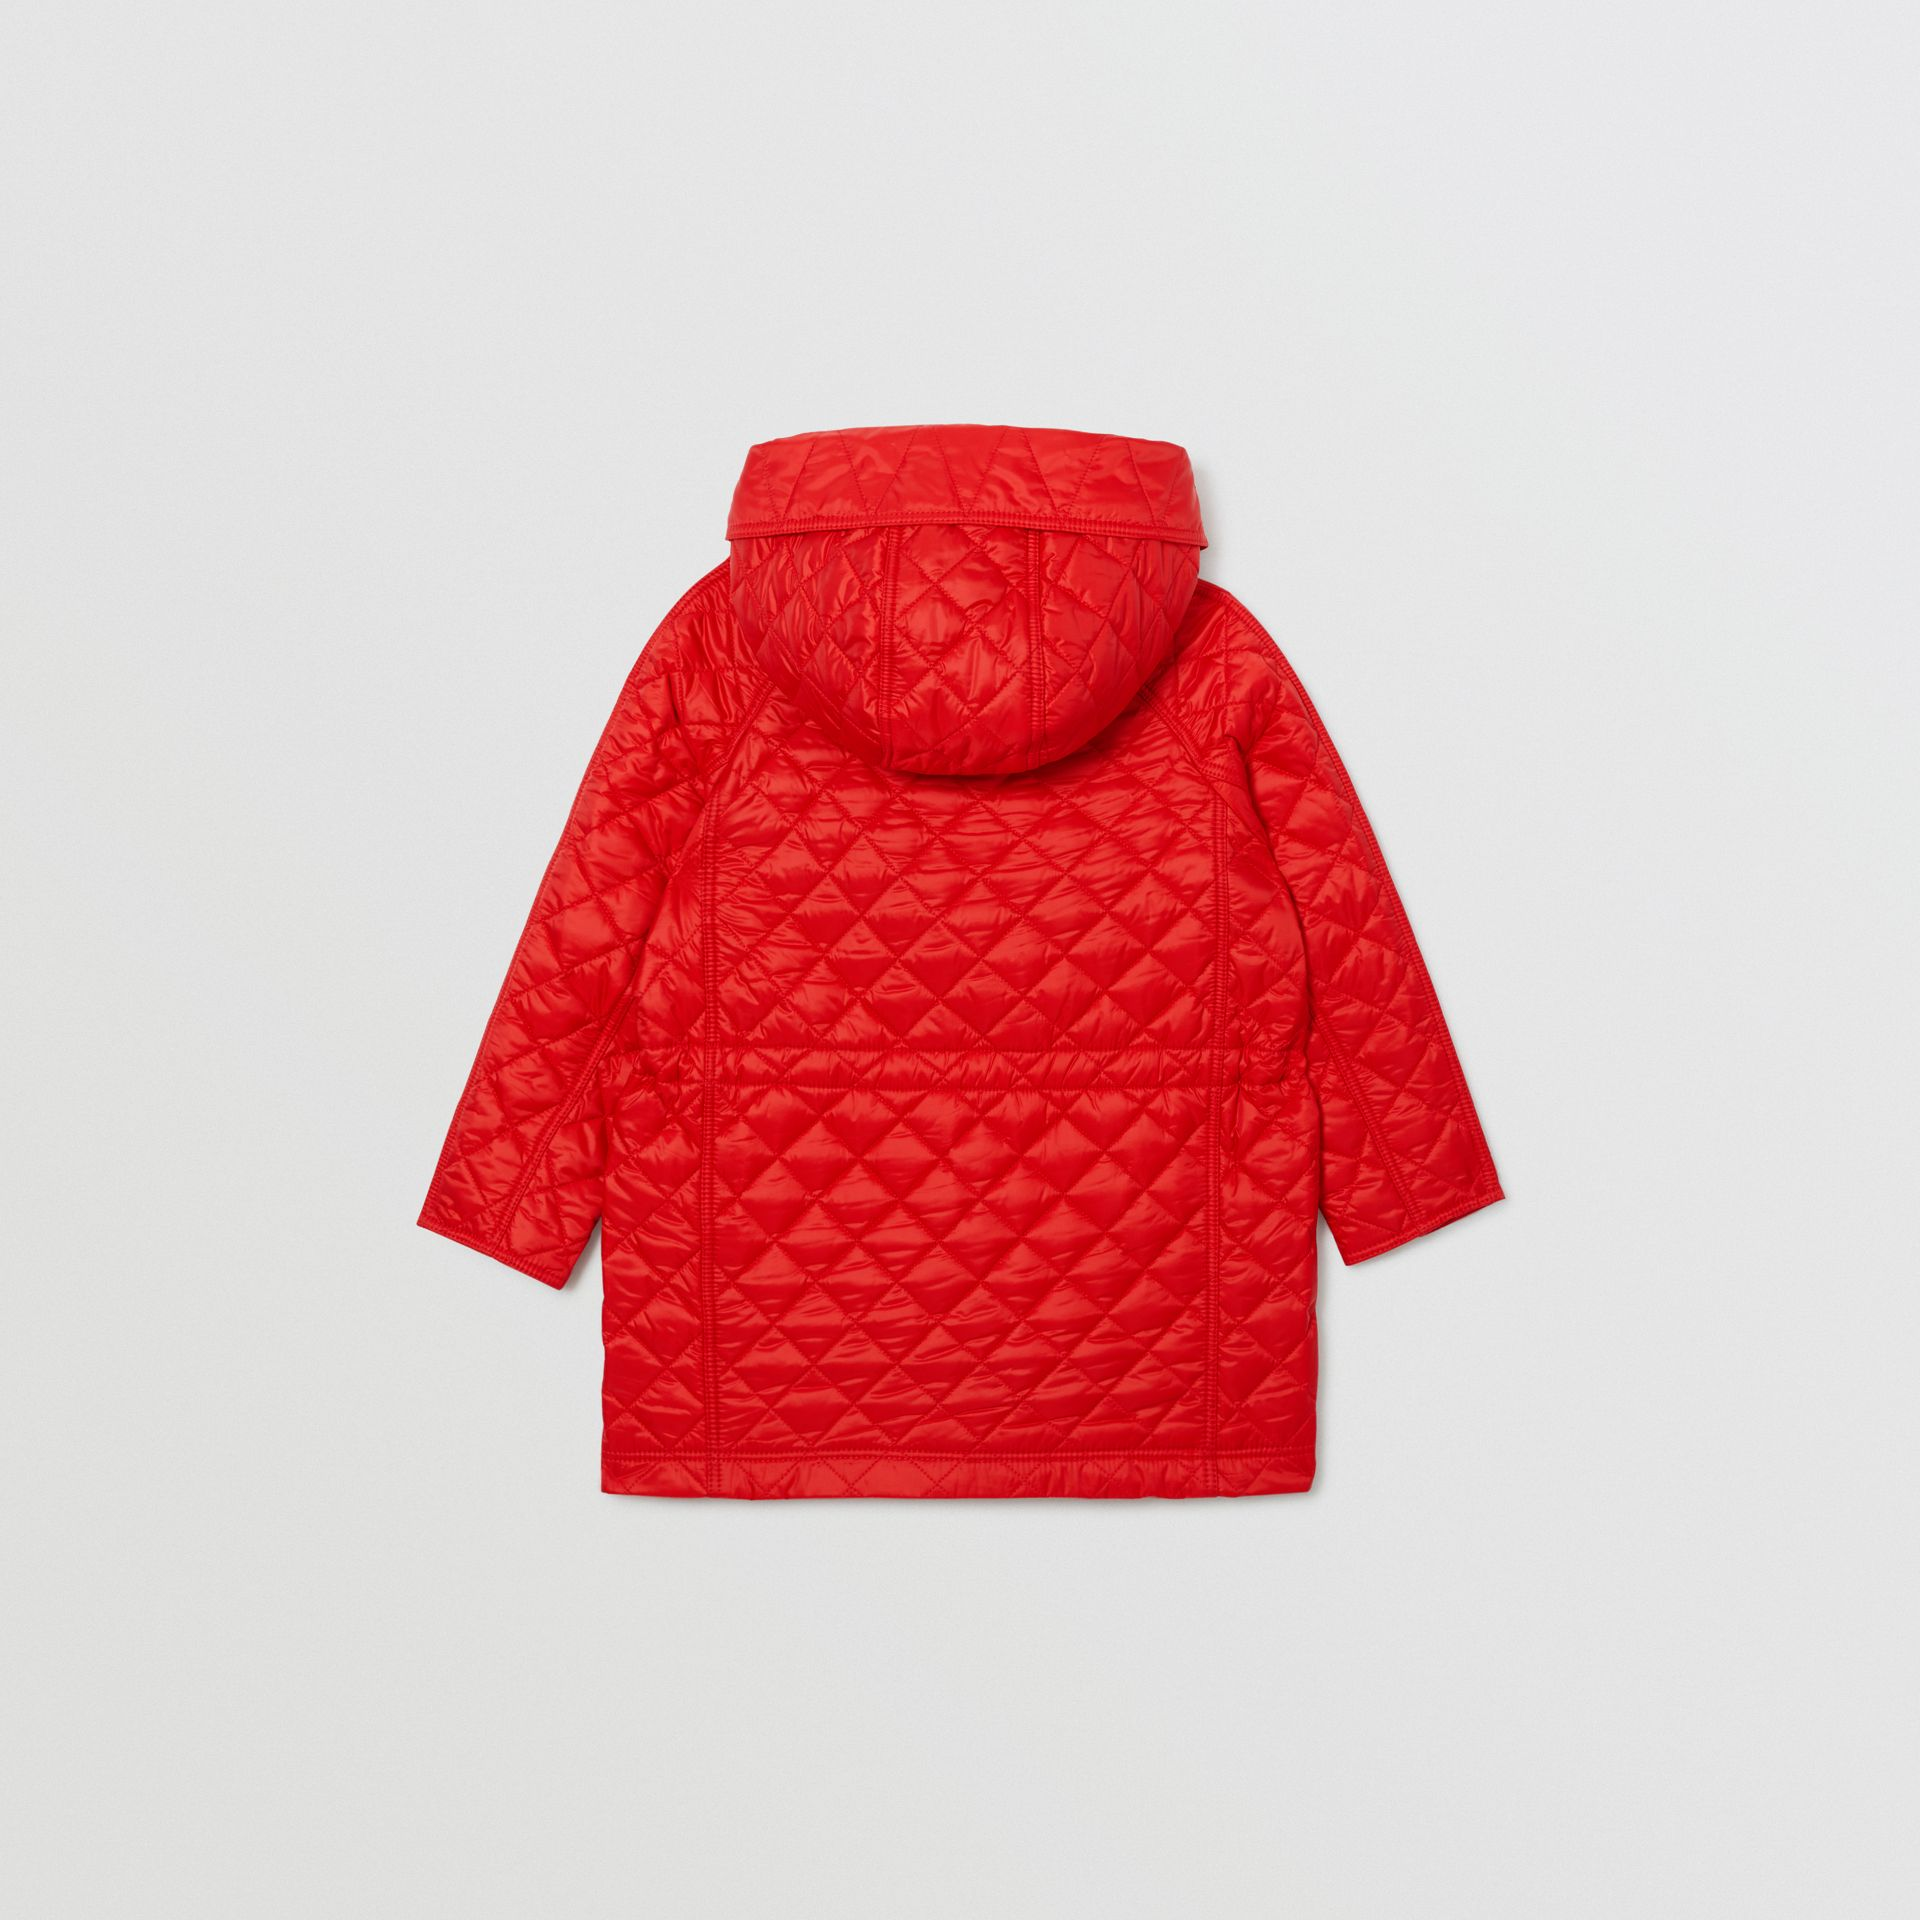 Diamond Quilted Hooded Coat in Bright Red   Burberry - gallery image 4